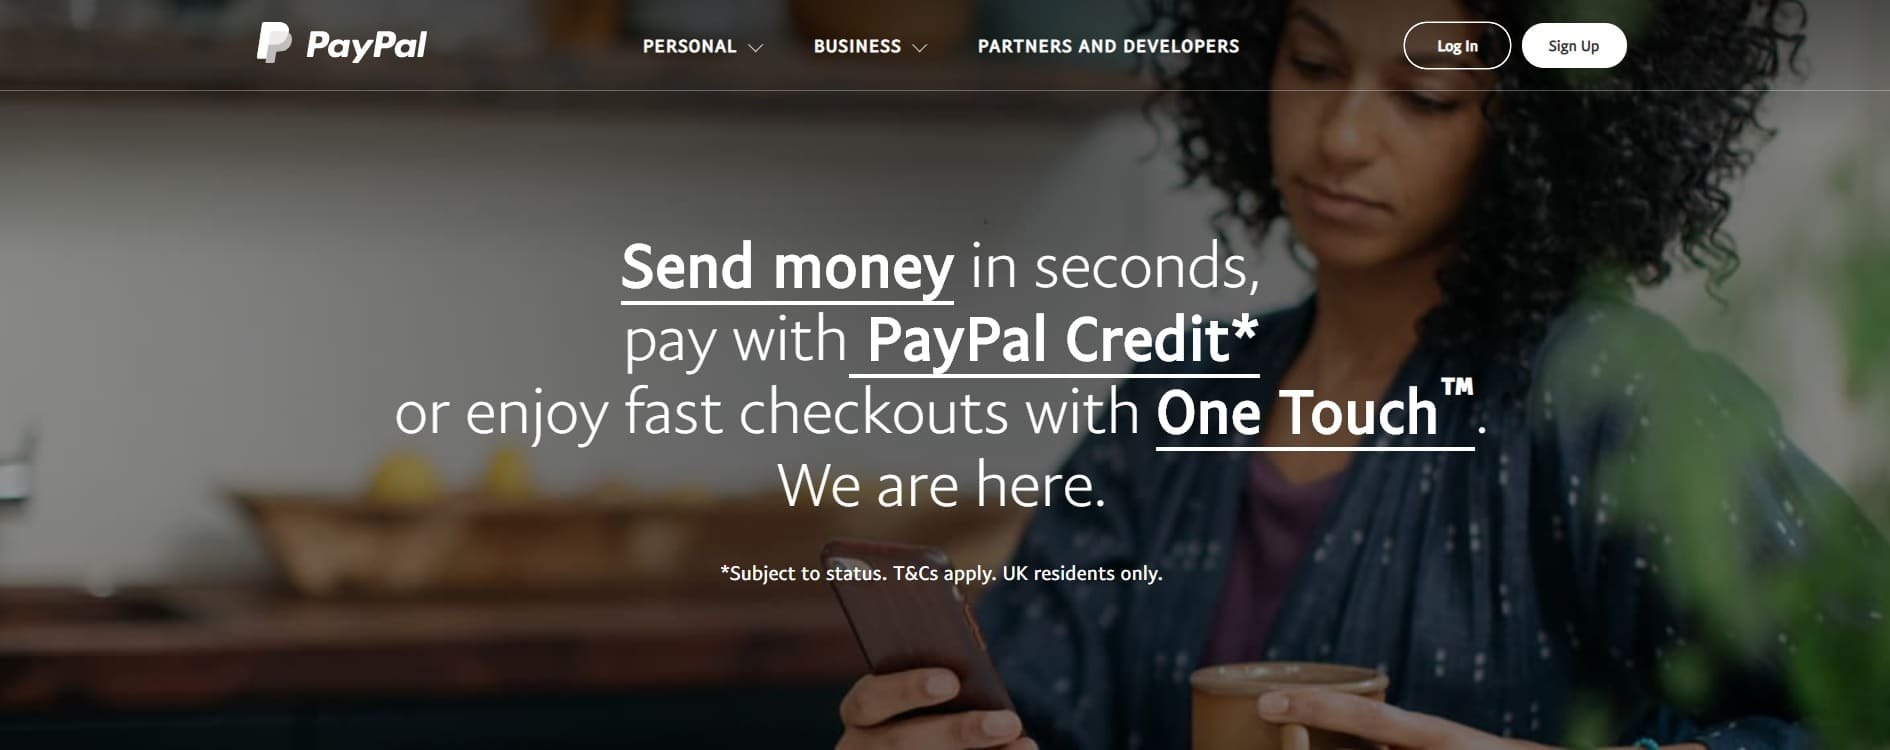 home page sito paypal